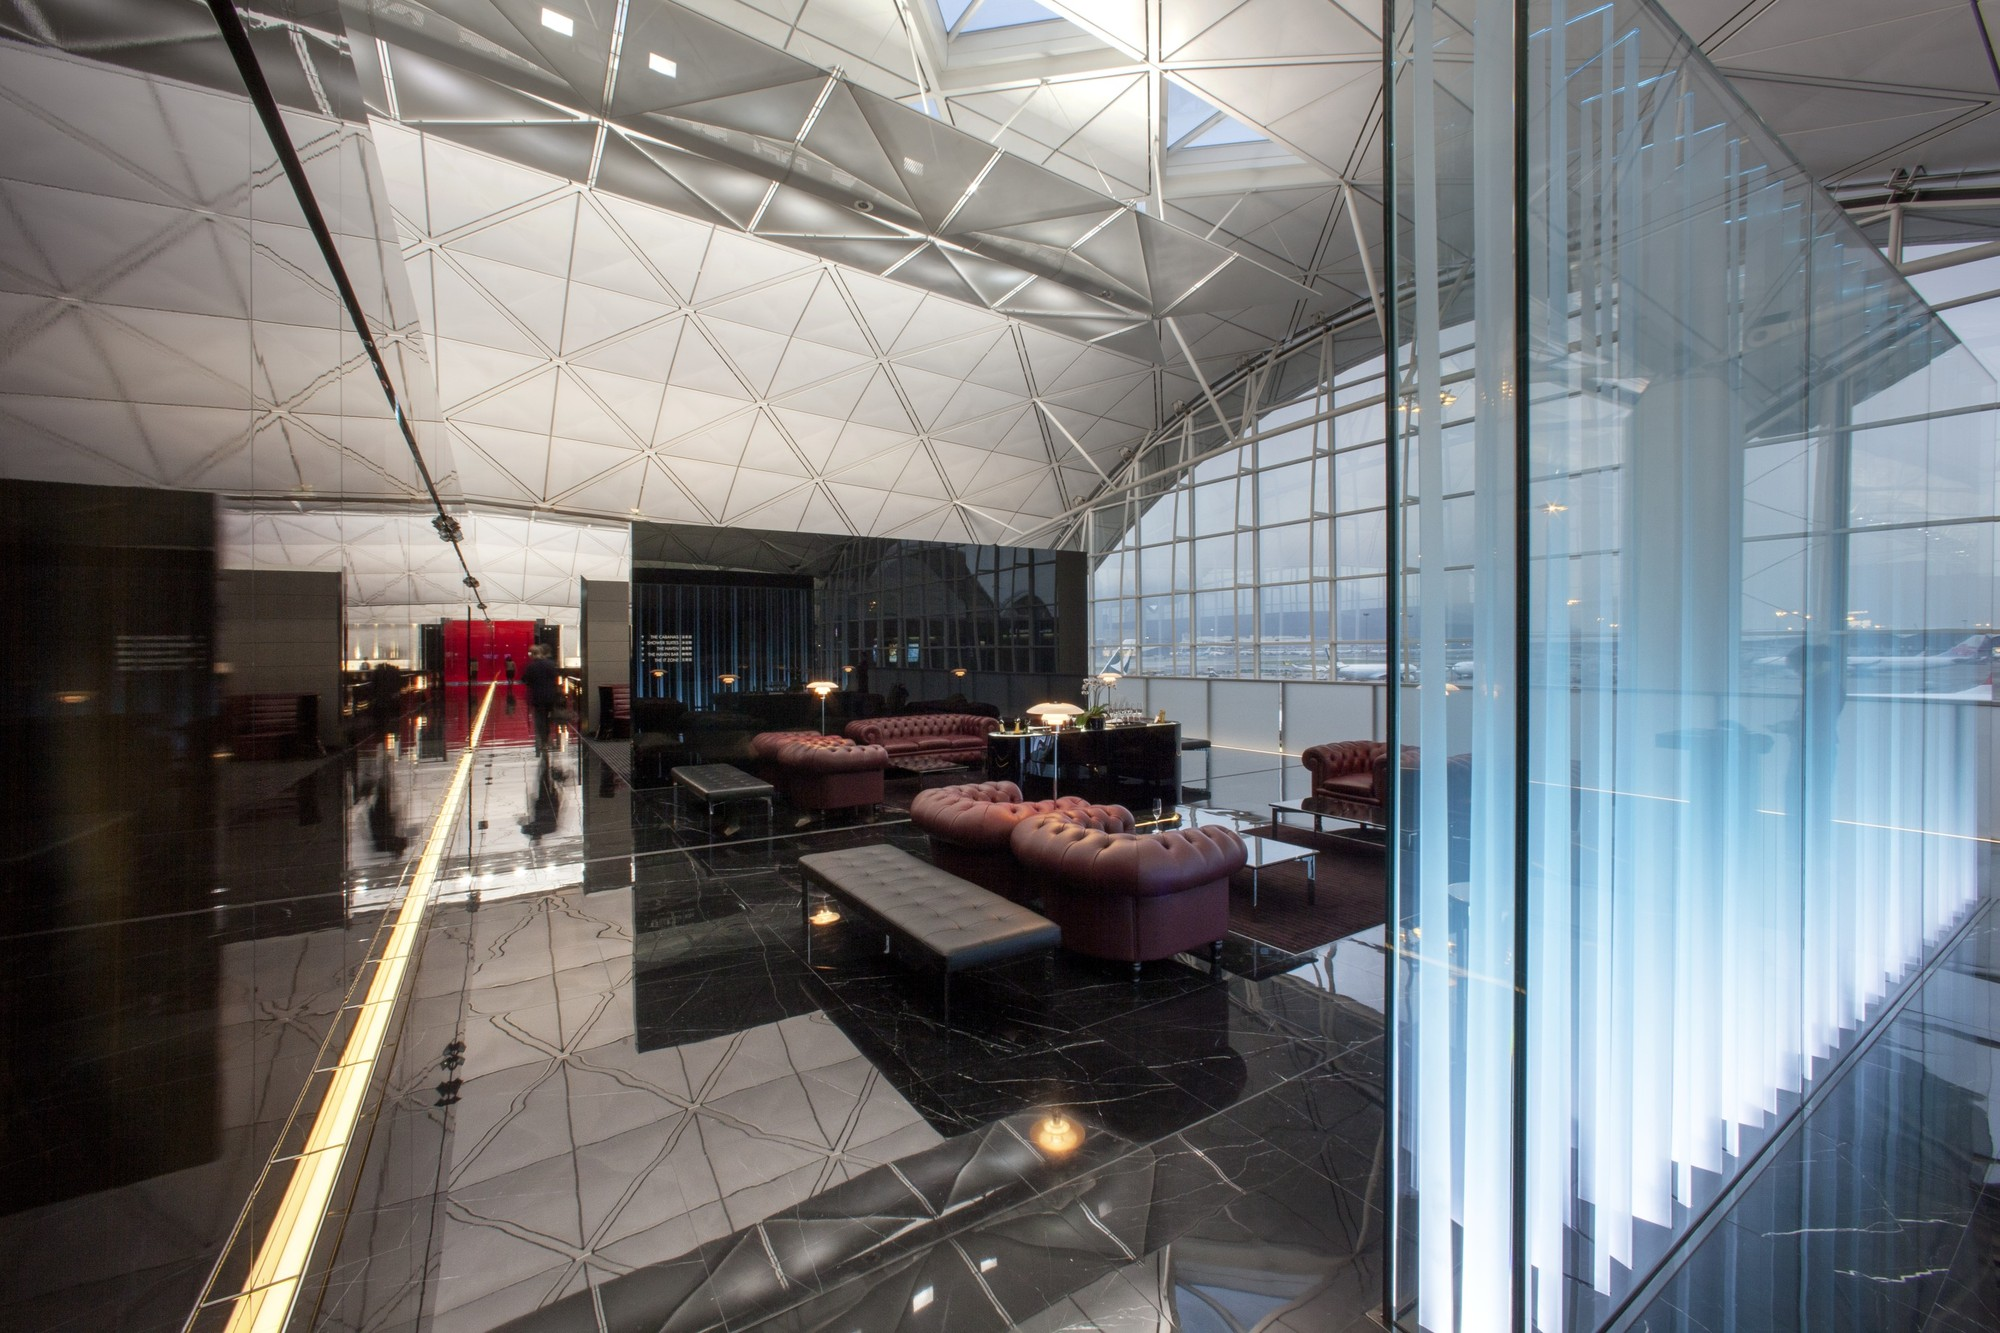 The lounges at Hong Kong International Airport, also designed by Foster + Partners. Image ©John Nye